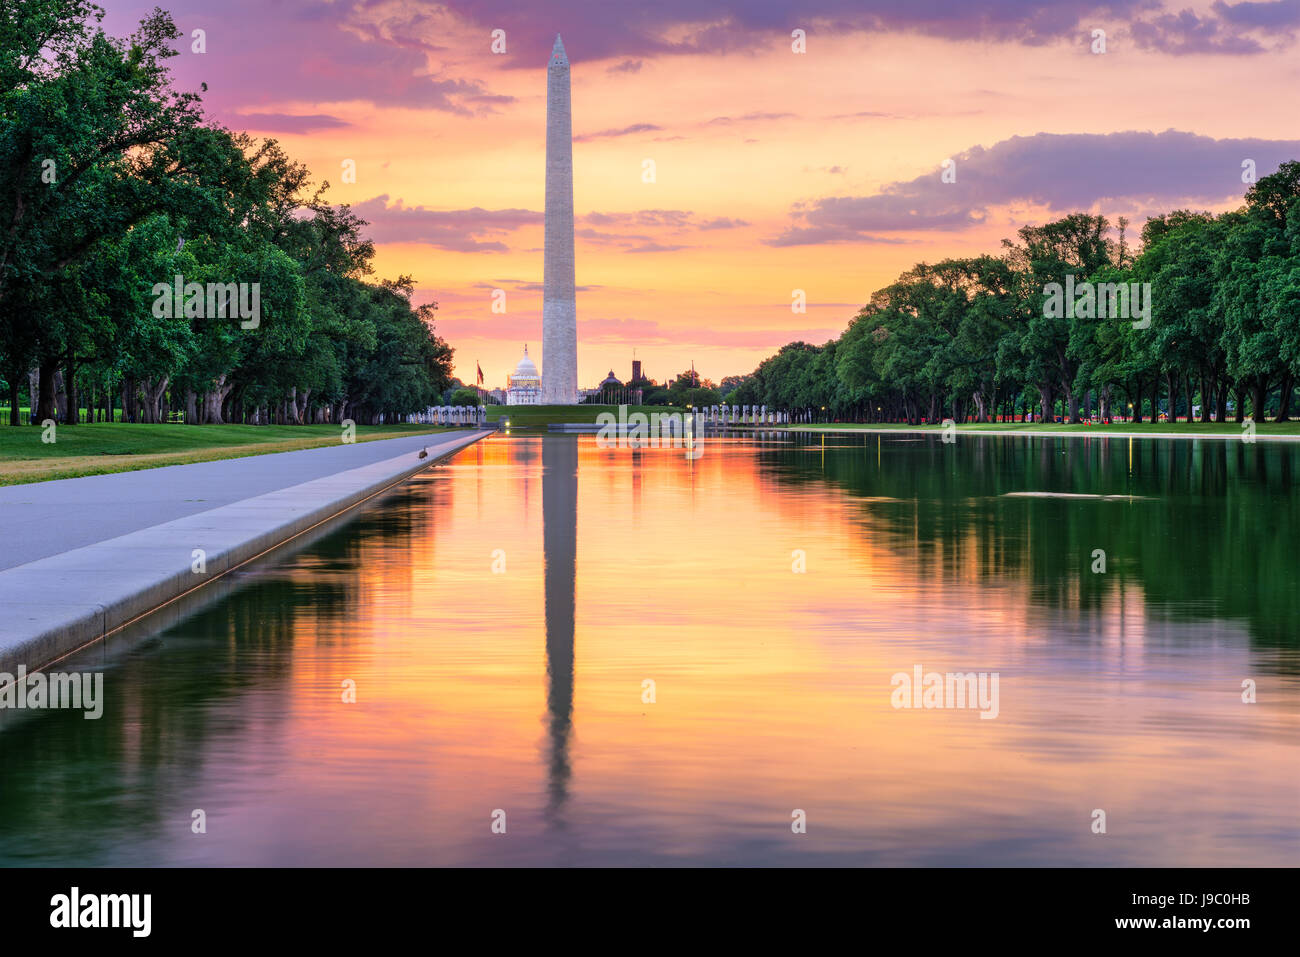 Washington Monument and Capitol Building from the Reflecting Pool in Washingon DC, USA. - Stock Image